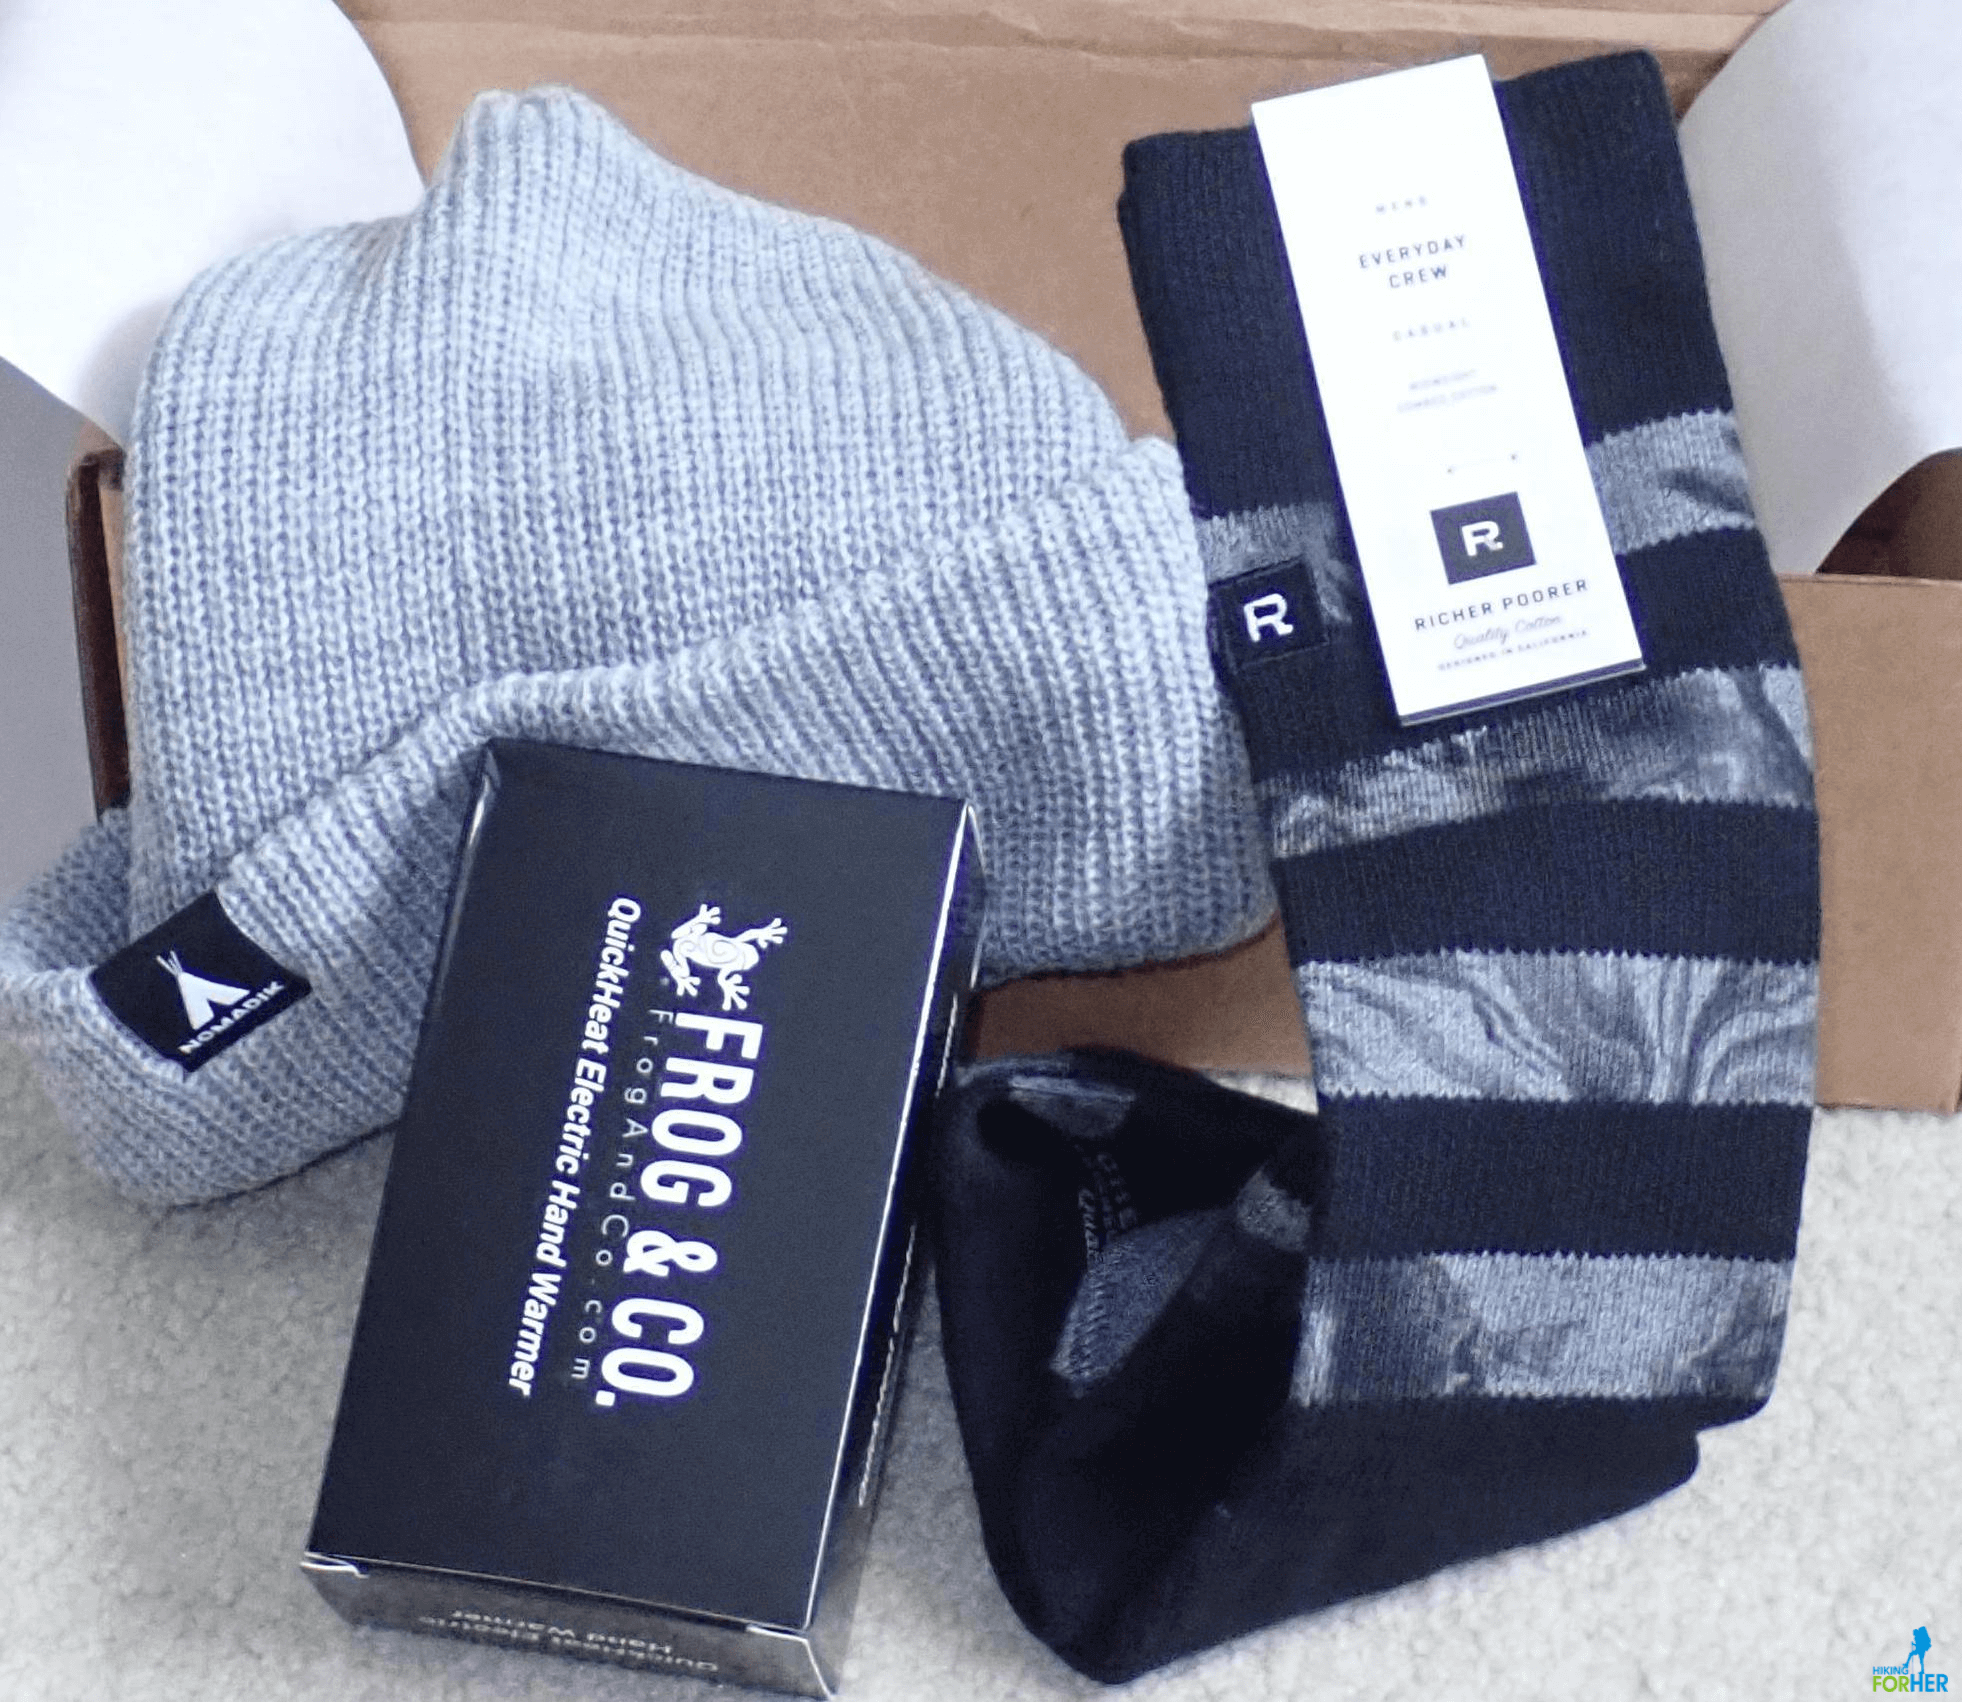 The Nomadik subscription box contents: gray hat, striped socks, hand warmer